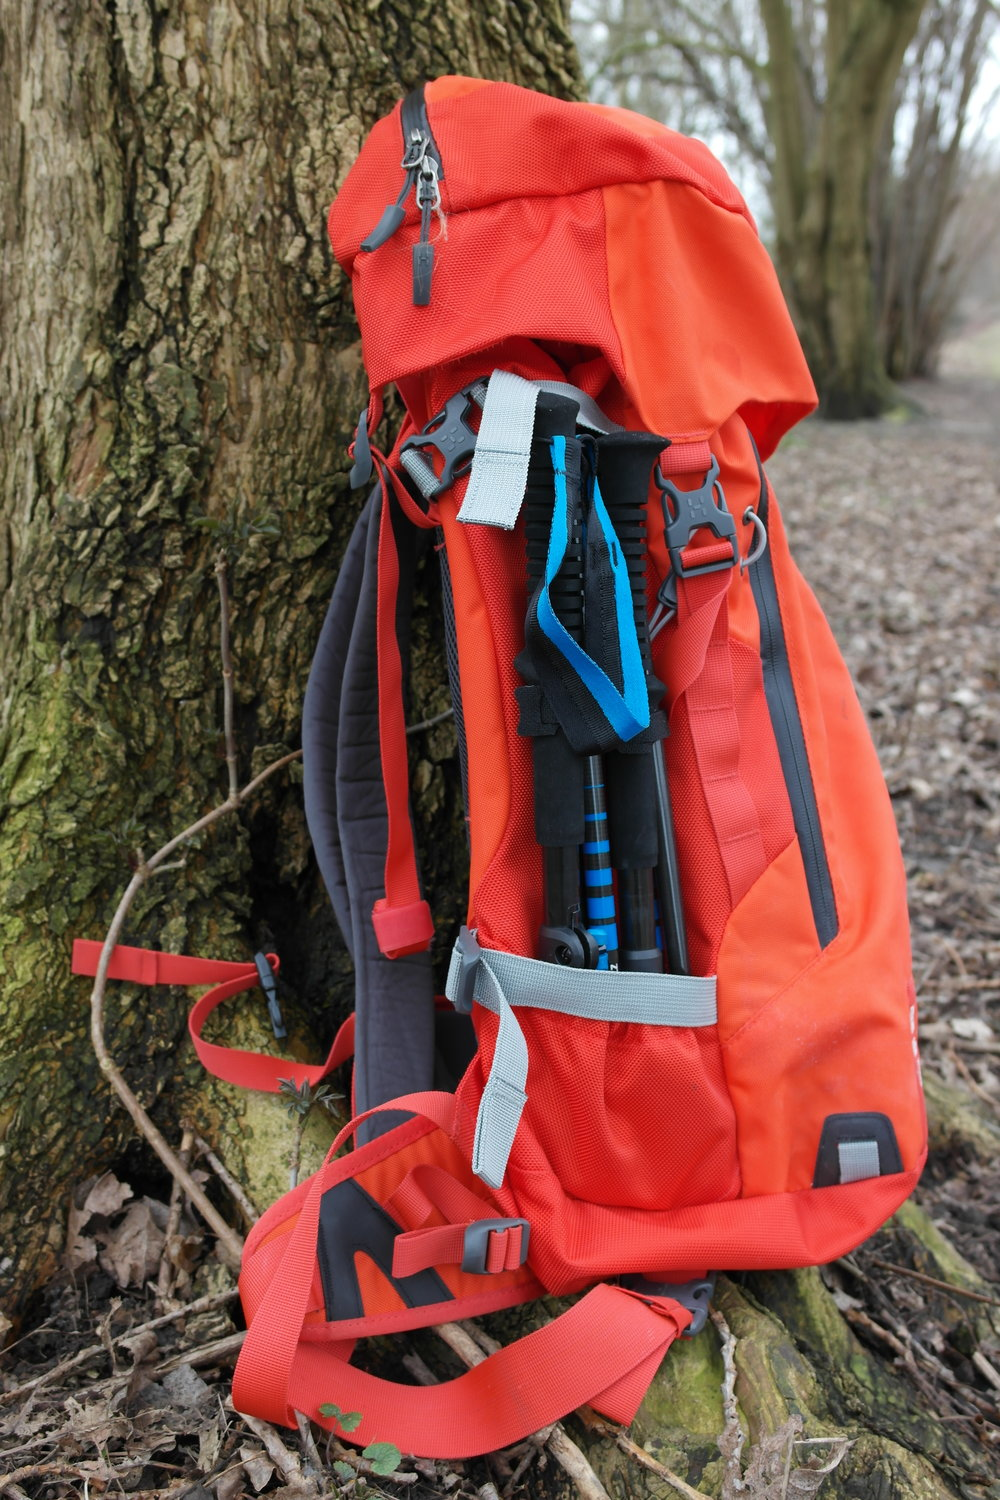 The  Haglofs Roc Rescue Backpack  is simply superb. I love this!